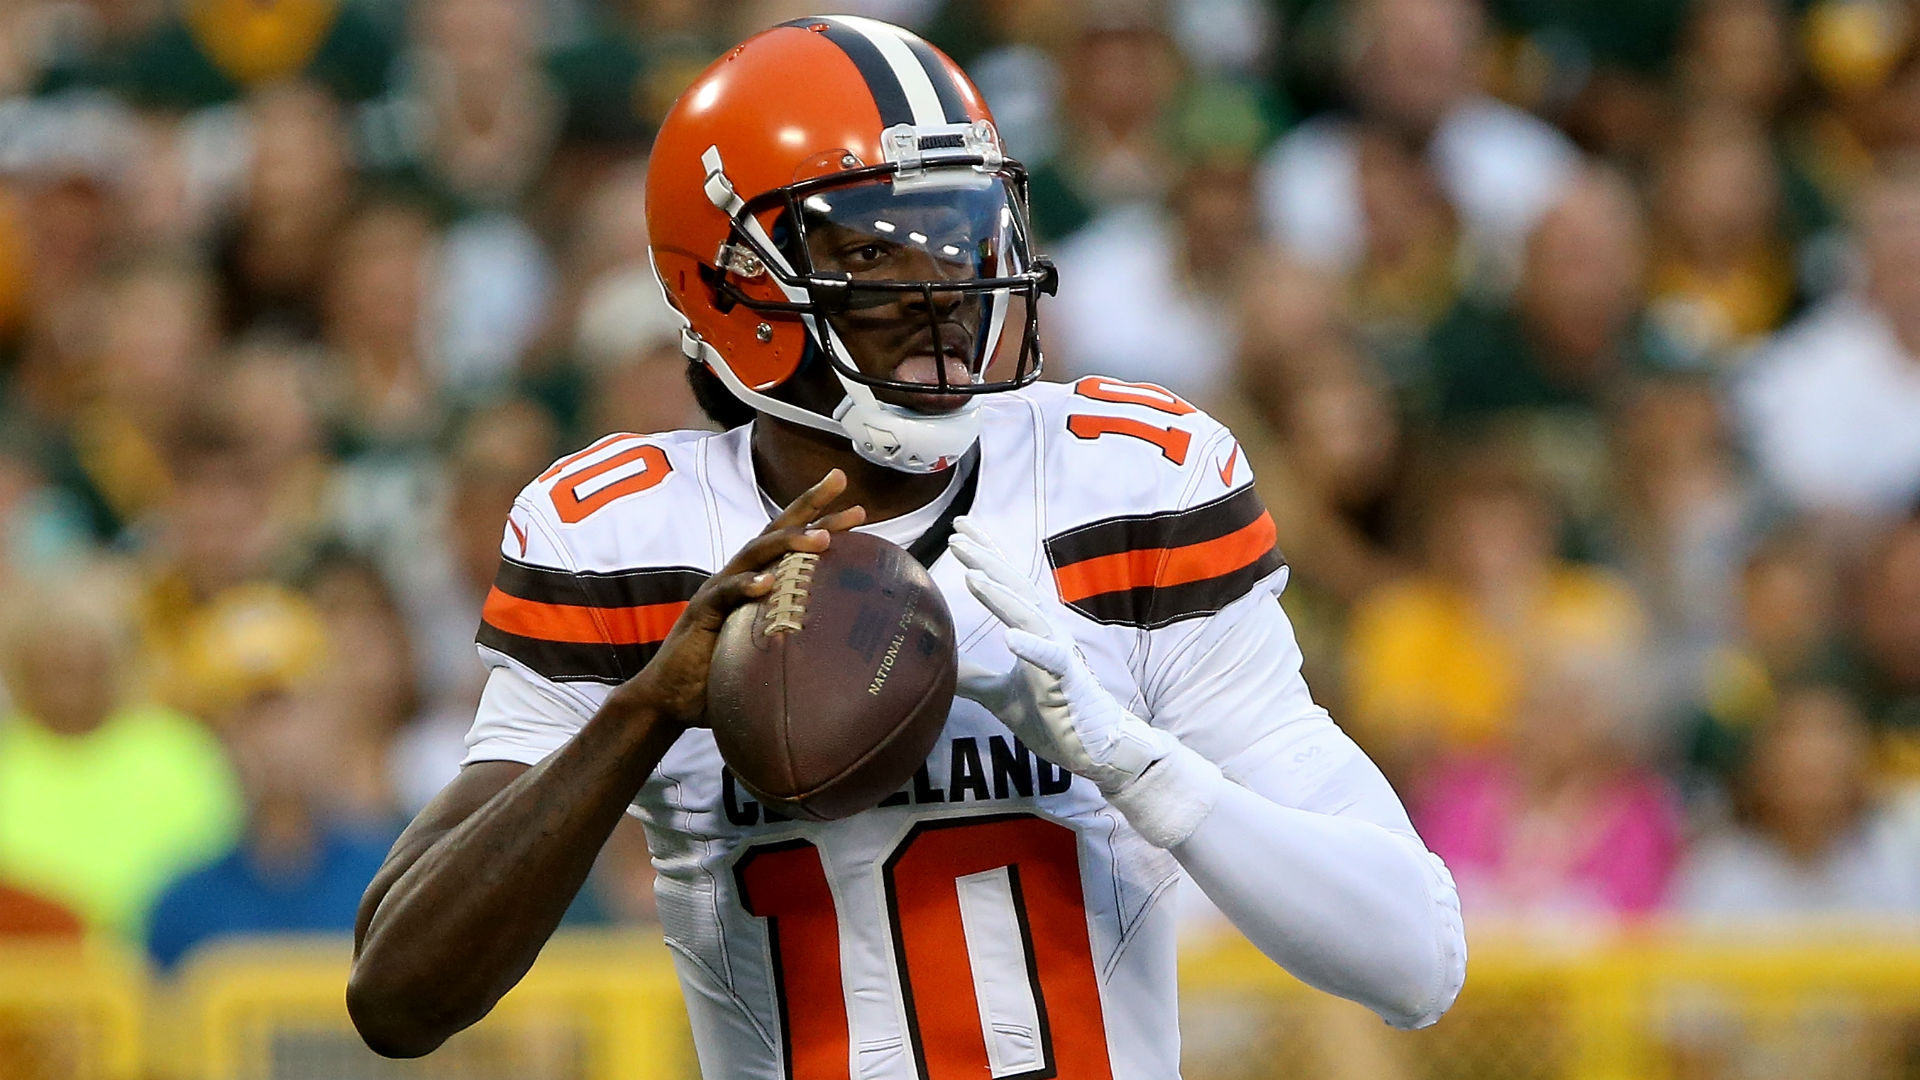 Ex-Browns QB Robert Griffin III signs with Ravens